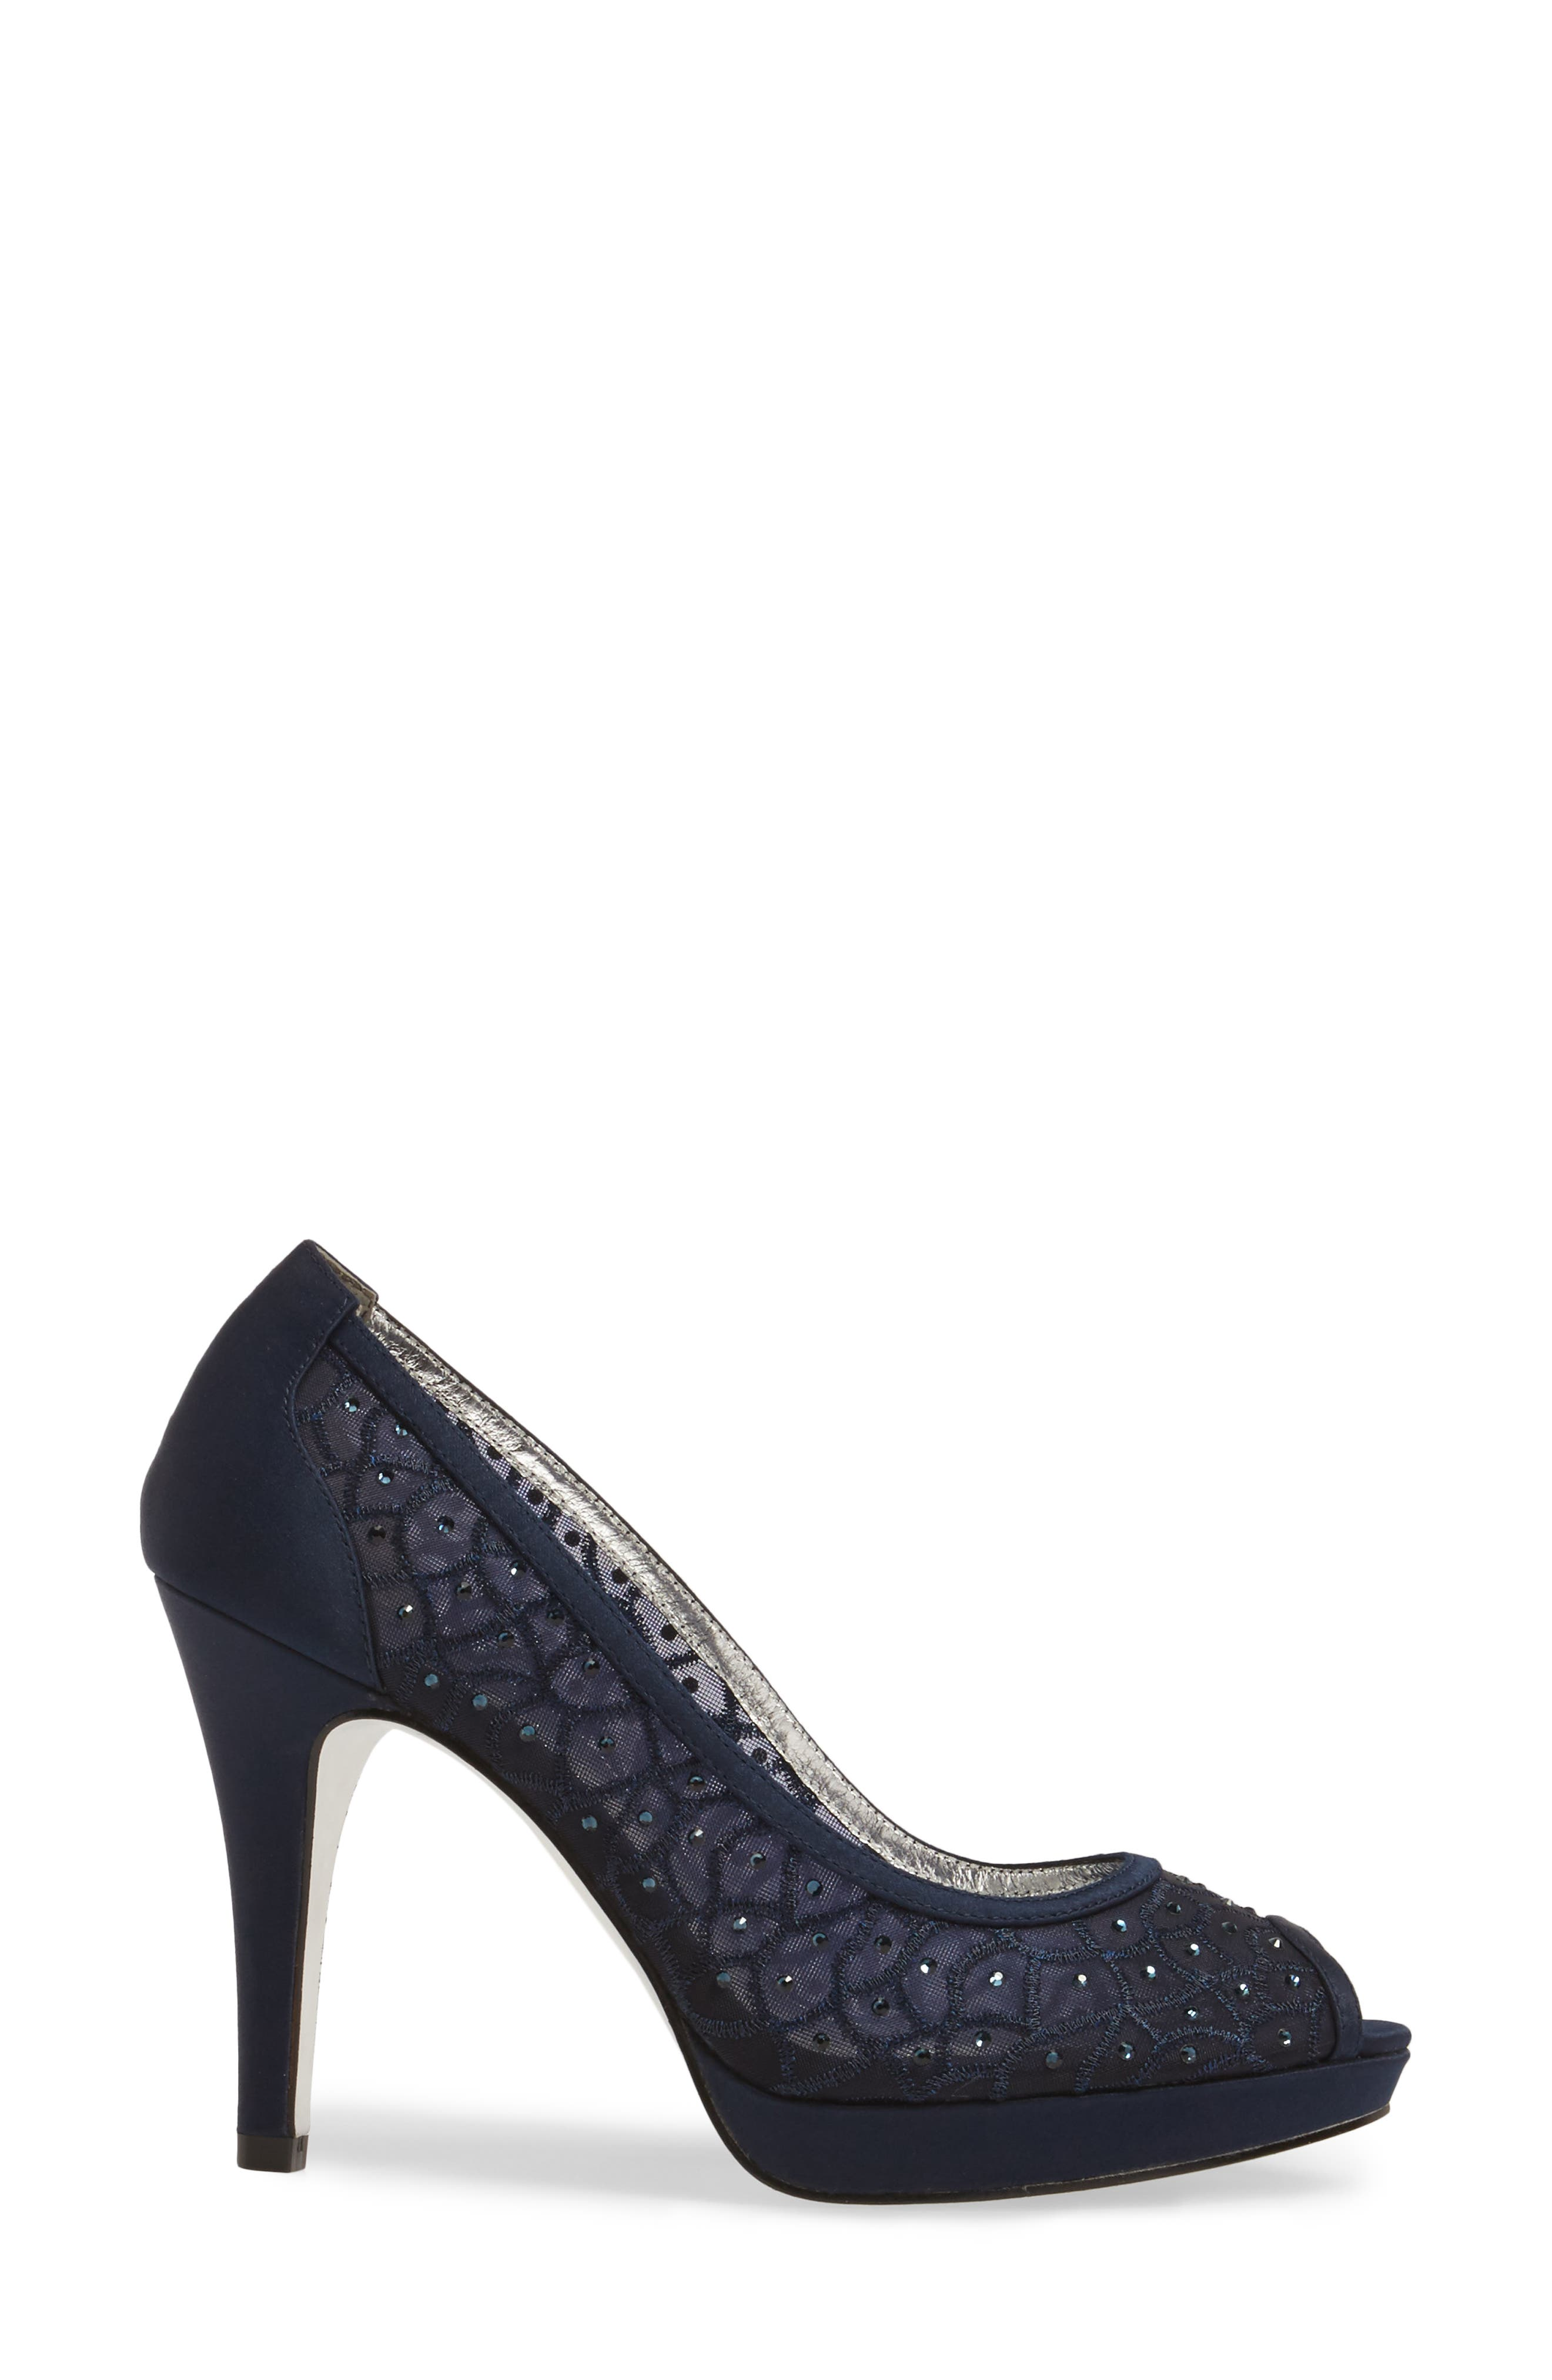 'Foxy' Crystal Embellished Peeptoe Pump,                             Alternate thumbnail 3, color,                             NAVY SATIN